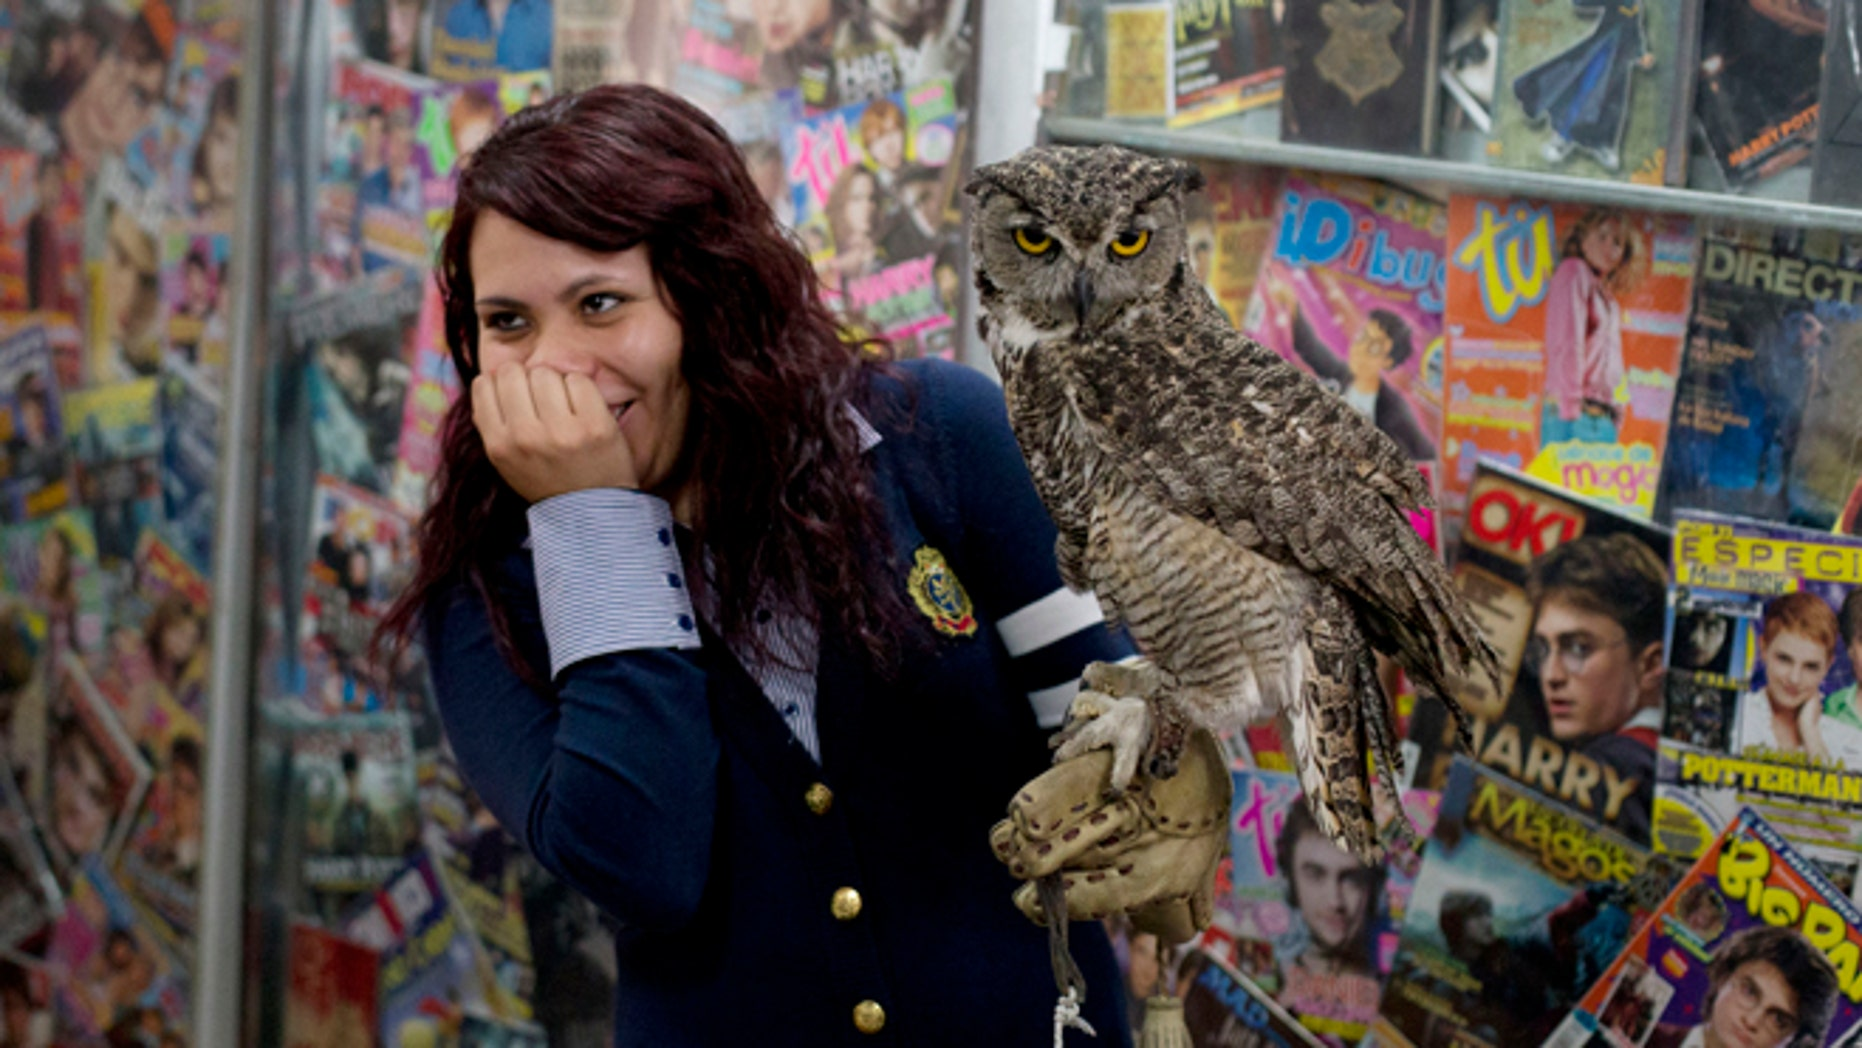 A Harry Potter fan reacts after a live owl bites her, inside an exhibition of the Guinness World Record holding collection of Harry Potter memorabilia, at the Mexican Museum of Antique Toys, in Mexico City, Friday, Feb. 27, 2015. Mexico's fan Menahem Asher Silva Vargas assembled the collection, which contains thousand objects, including figurines, wands, magazines, puzzles, and accessories. (AP Photo/Rebecca Blackwell)